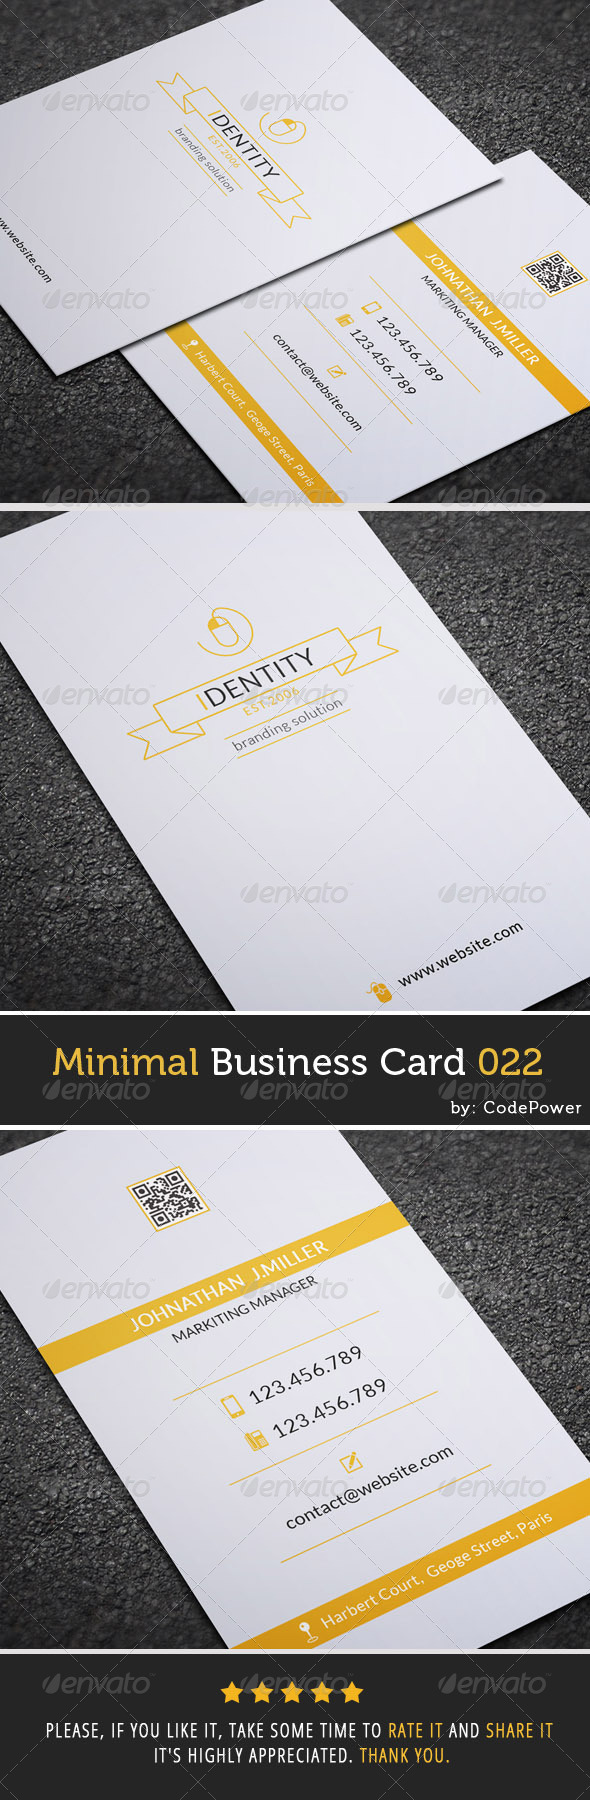 GraphicRiver Minimal Business Card 022 7592481